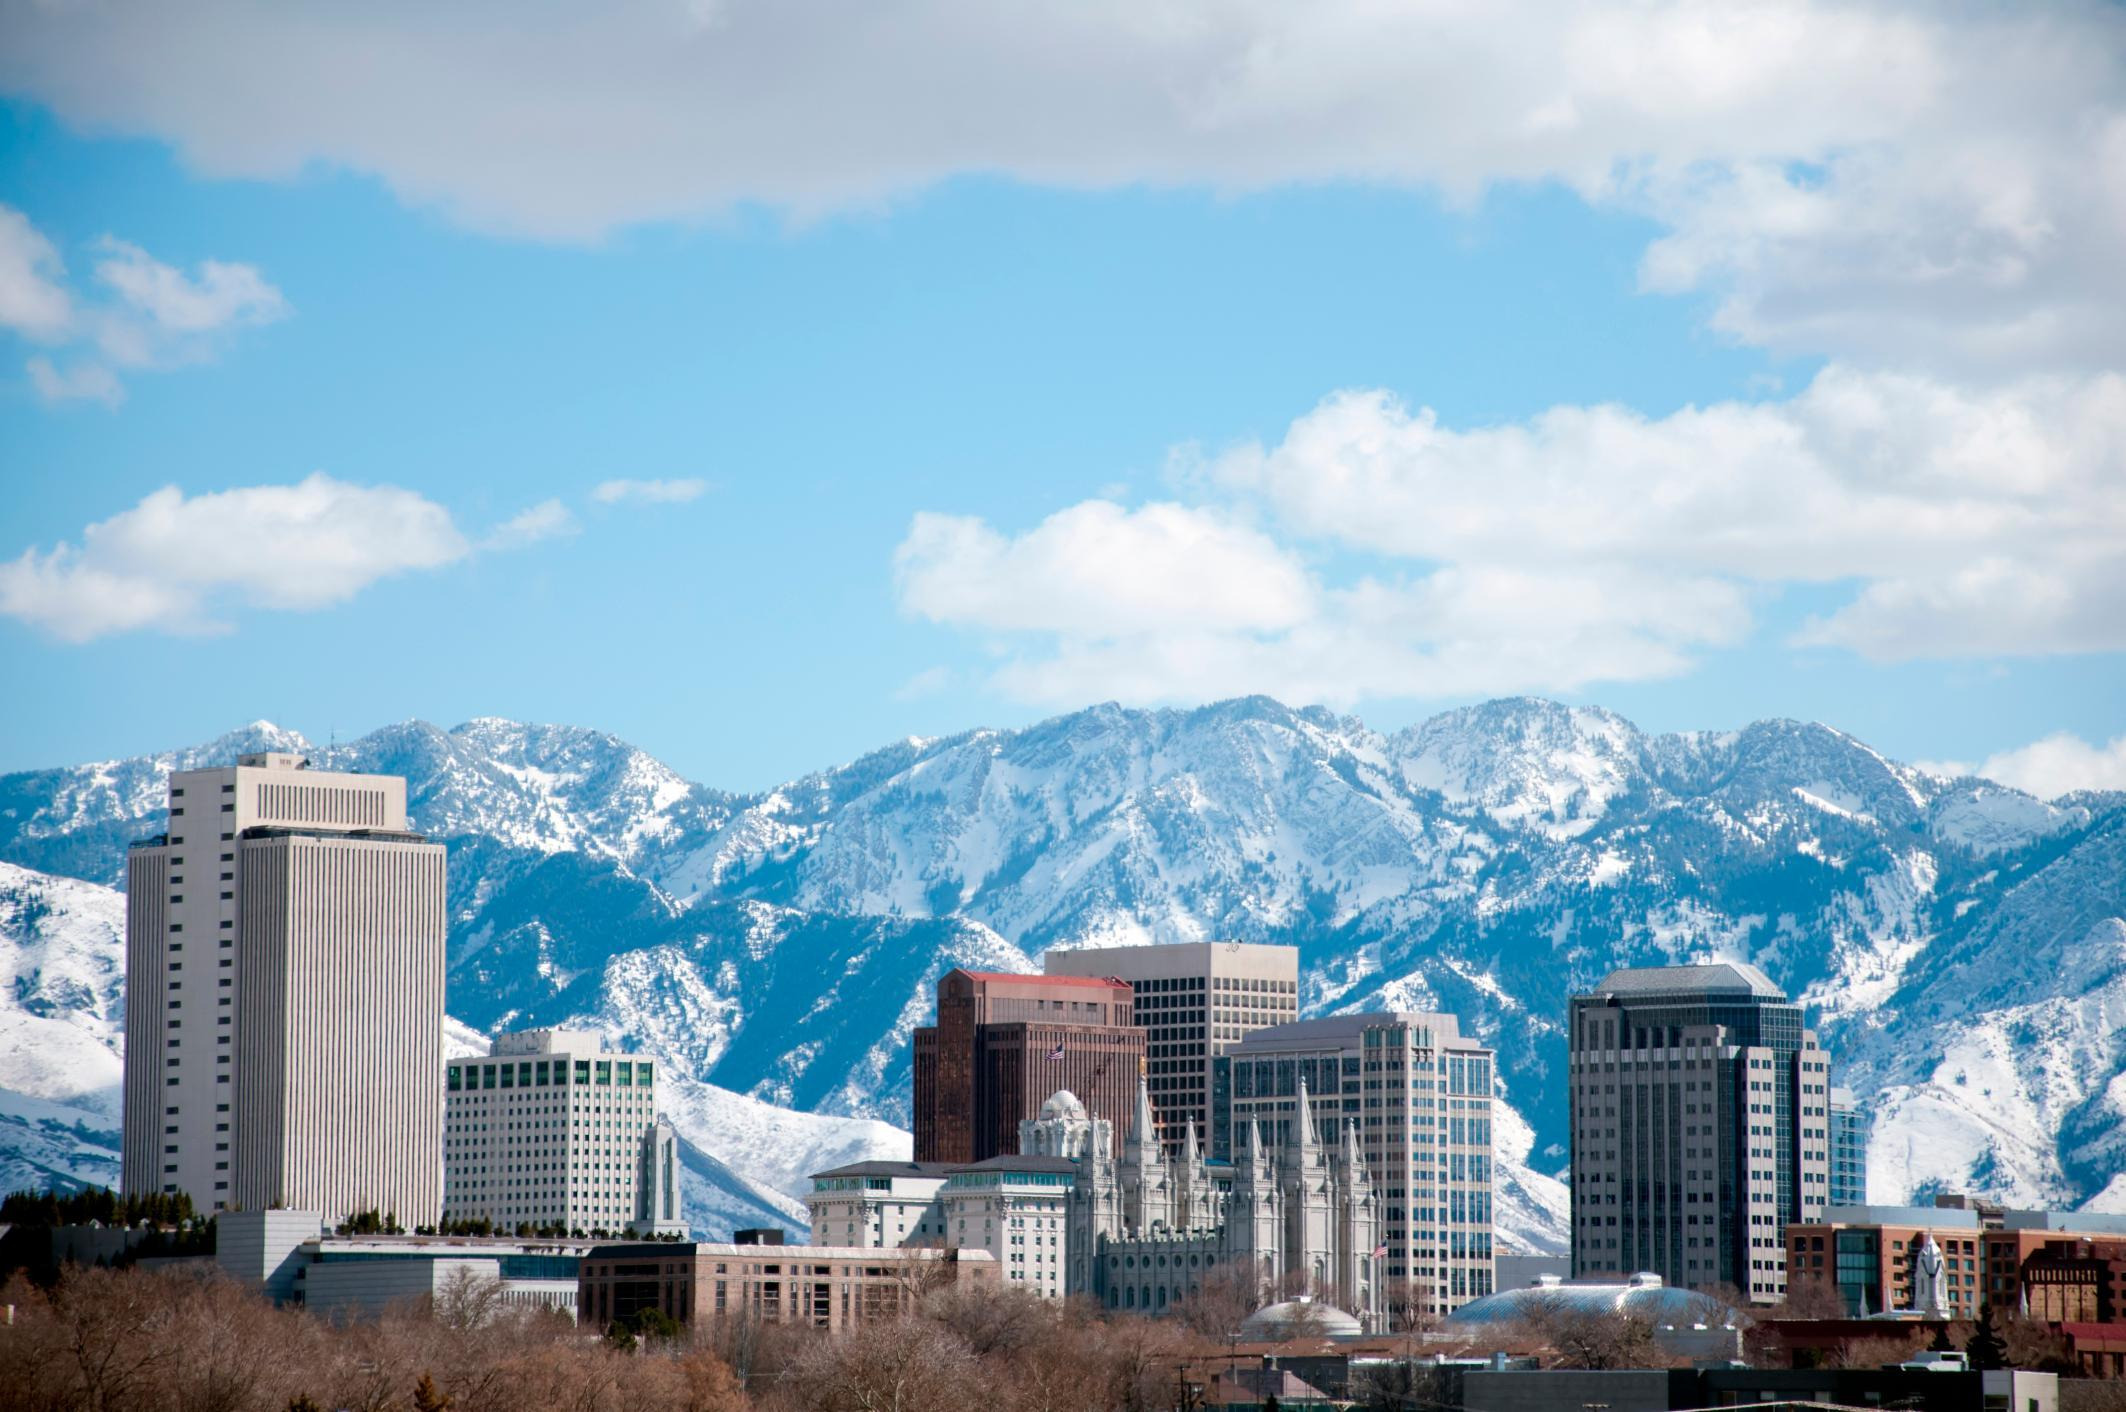 How to Spend 1 Day in Salt Lake City